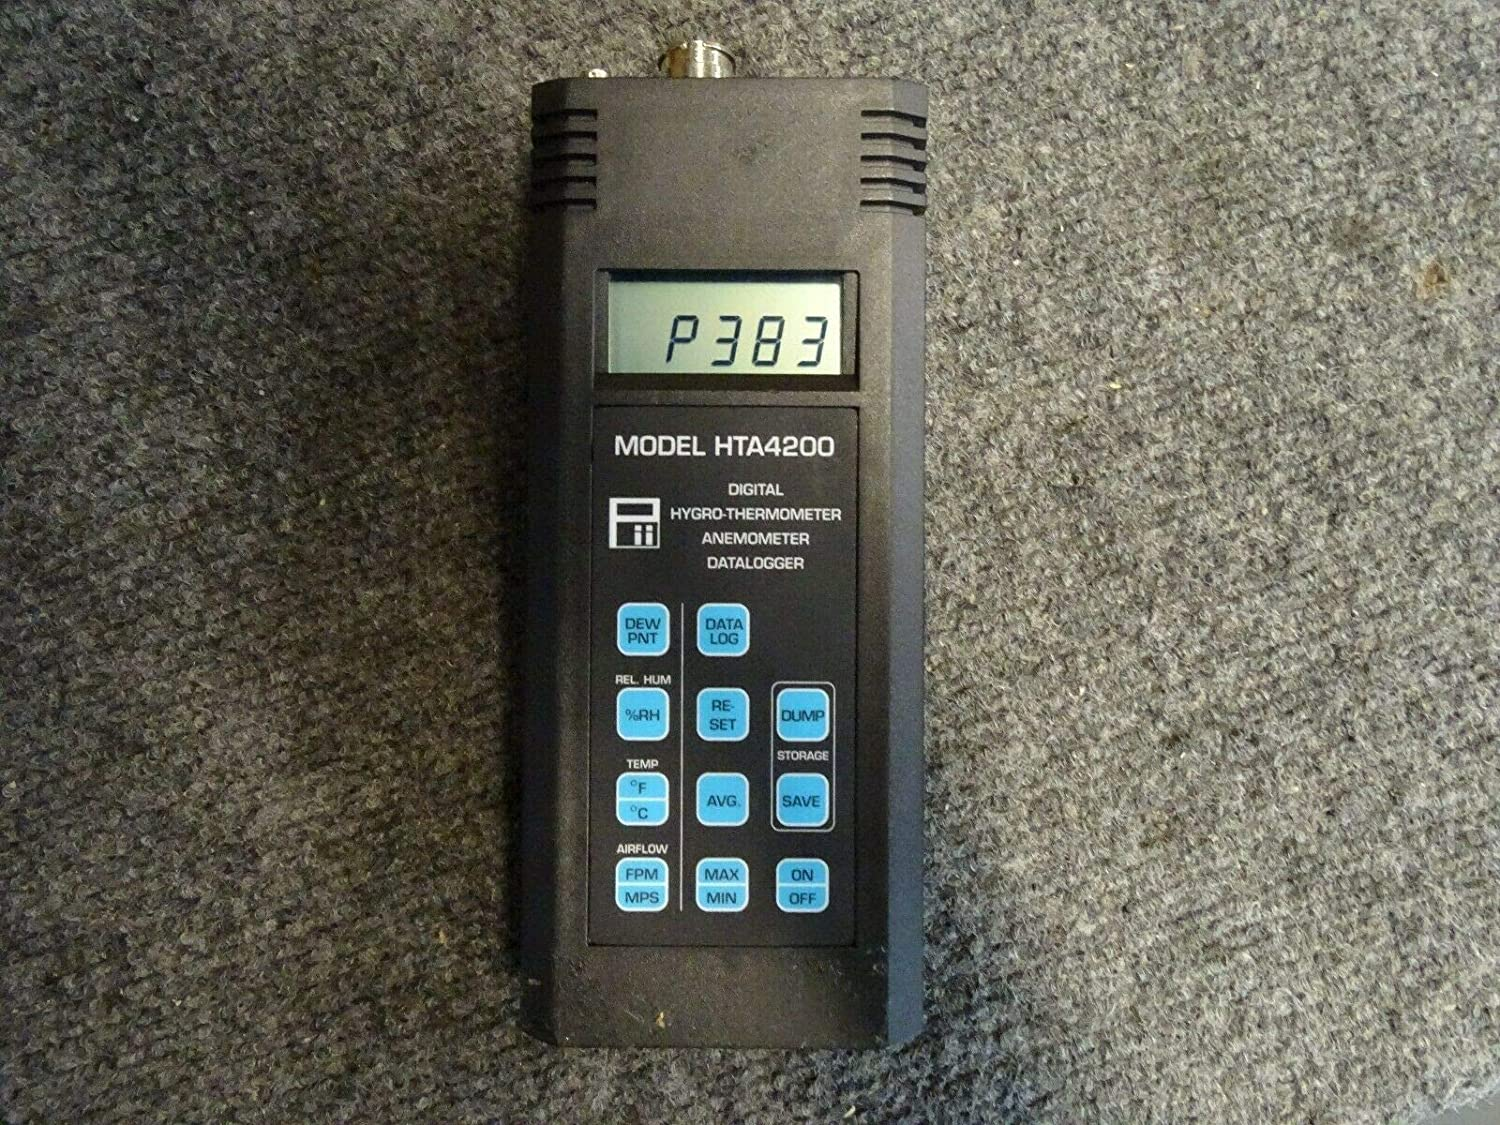 Pacer HTA4200 Digital Hygro Thermometer Anemometer Data Logger